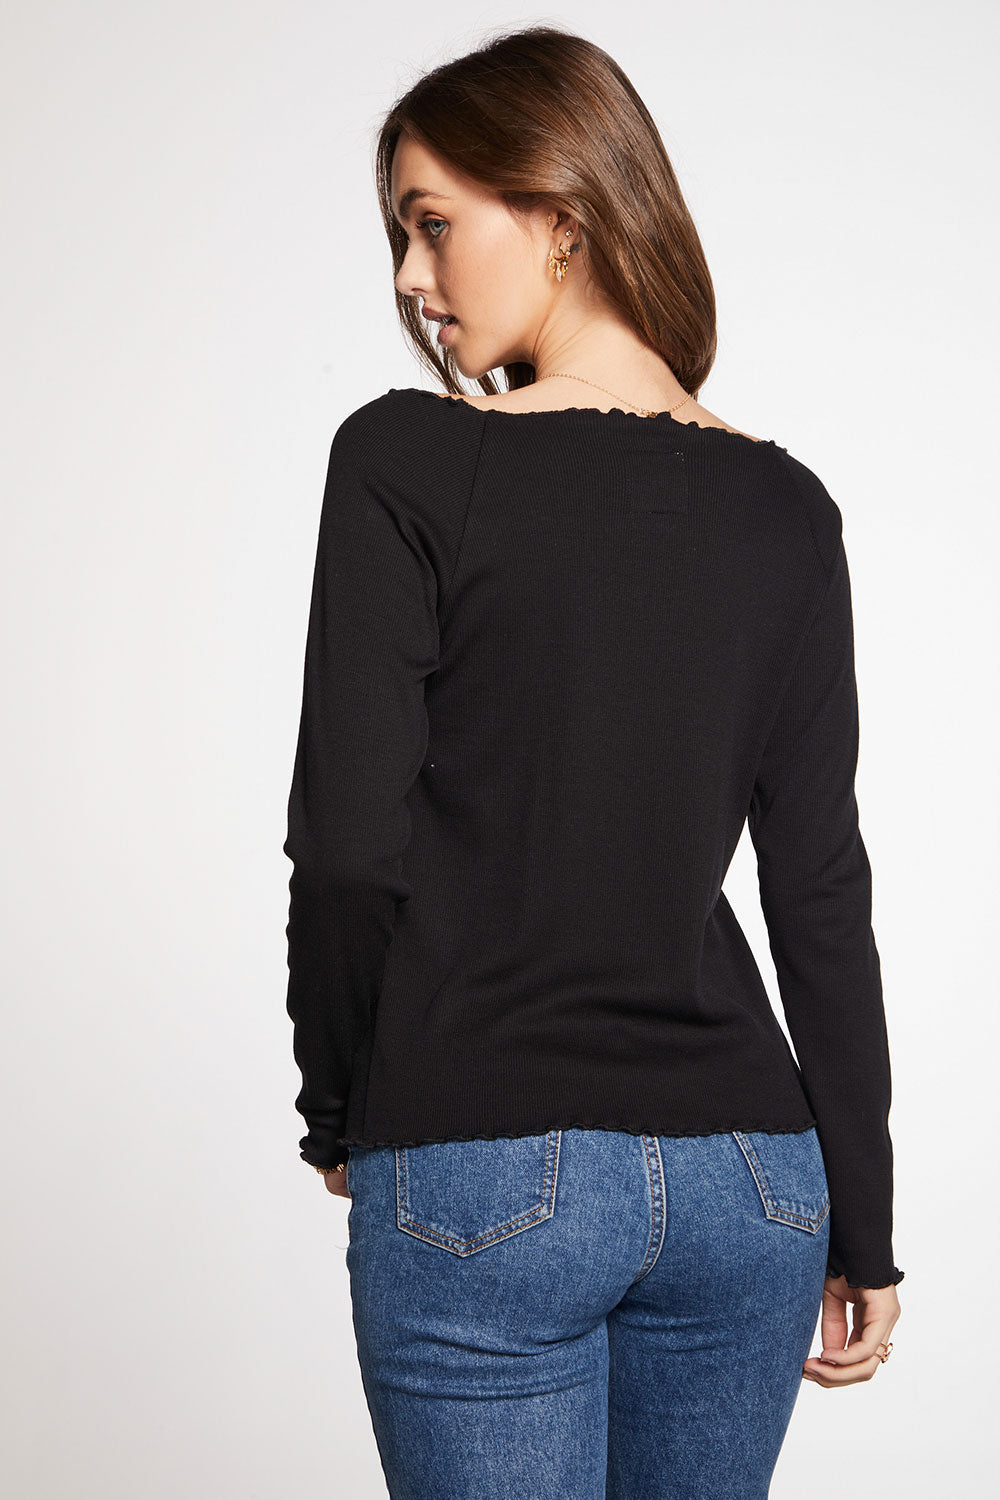 Vintage Rib Lettuced Open Neck Long Sleeve Ballet Tee